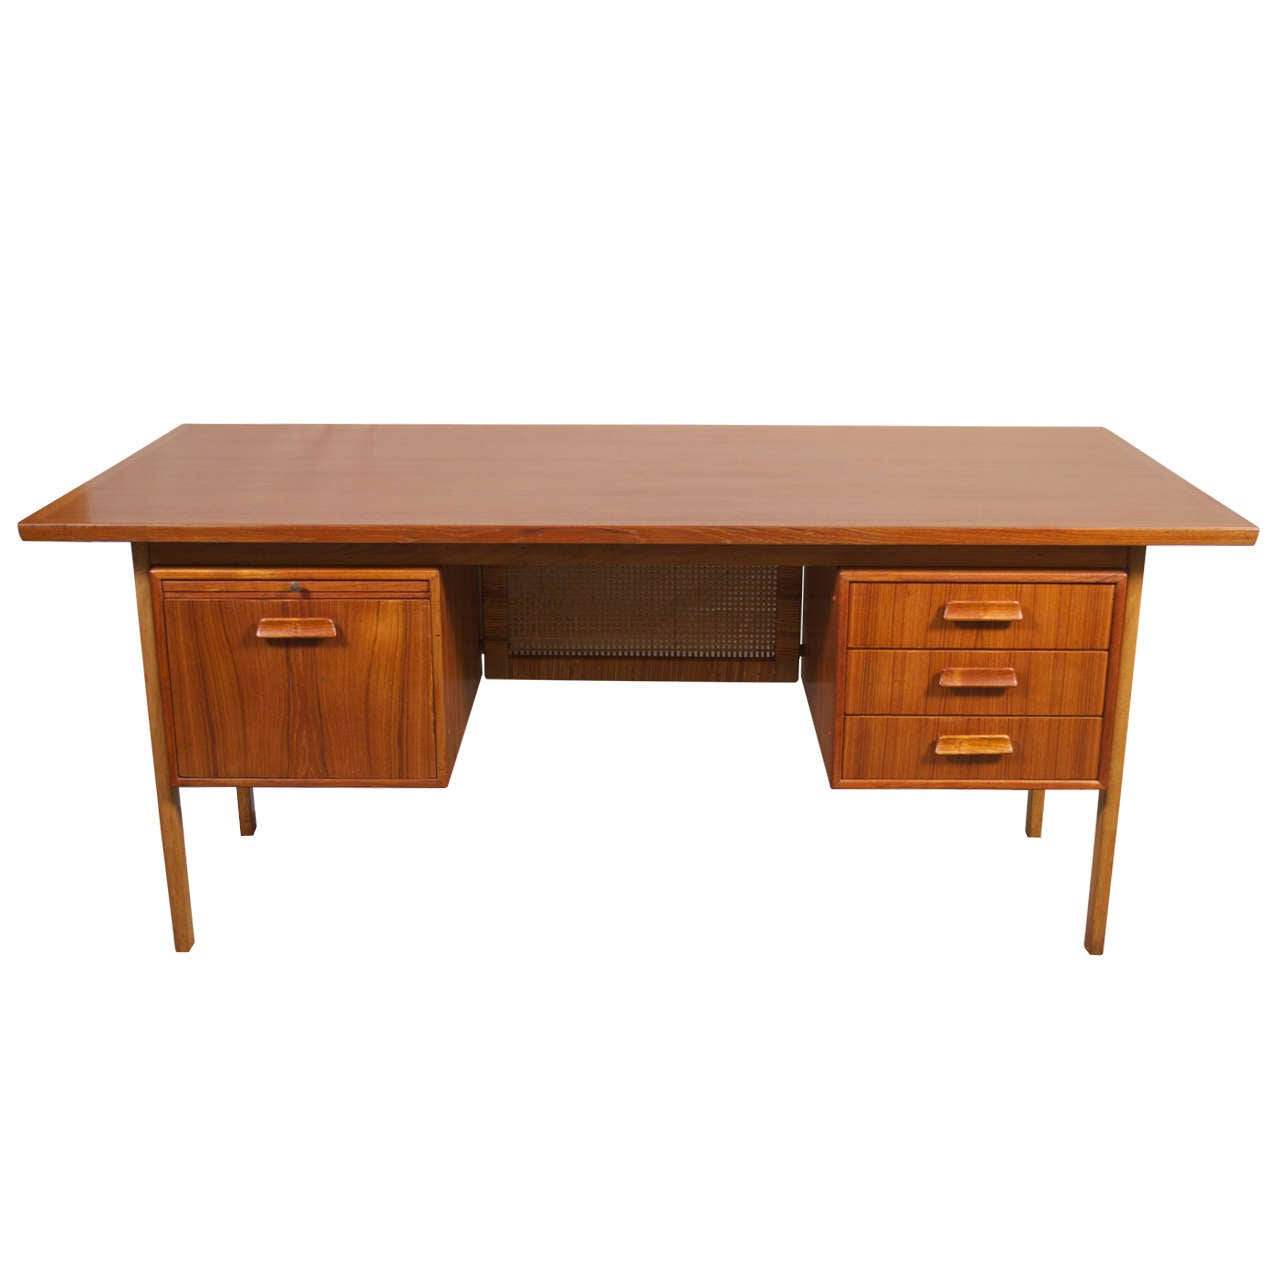 danish modern teak executive desk wrattan modesty screen at stdibs - danish modern teak executive desk wrattan modesty screen